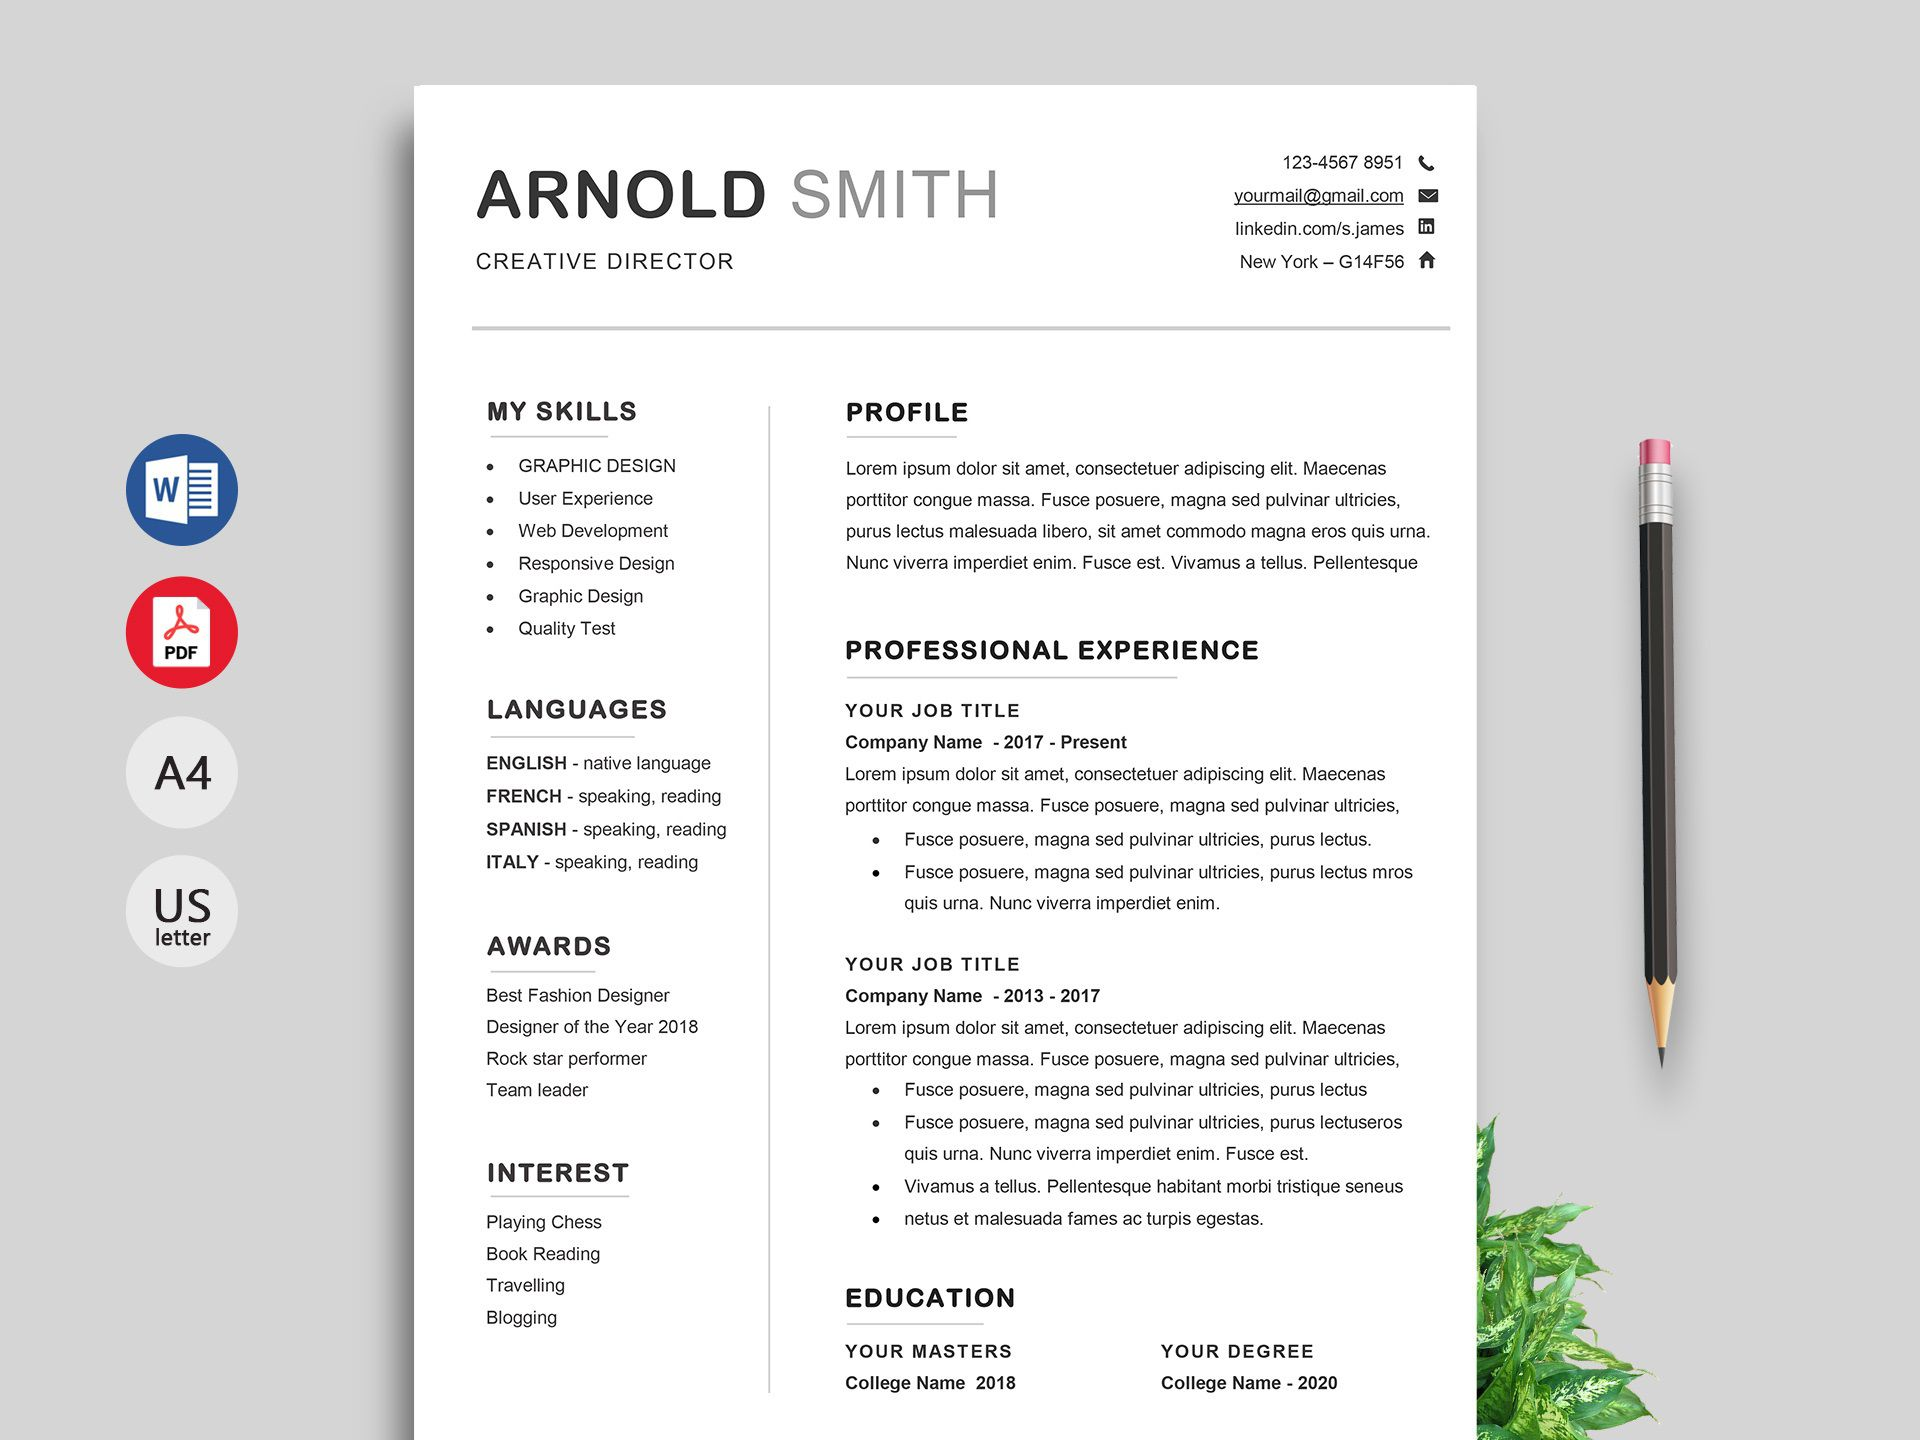 001 Best Resume Template Free Word Doc Image  Cv Download Document For StudentFull